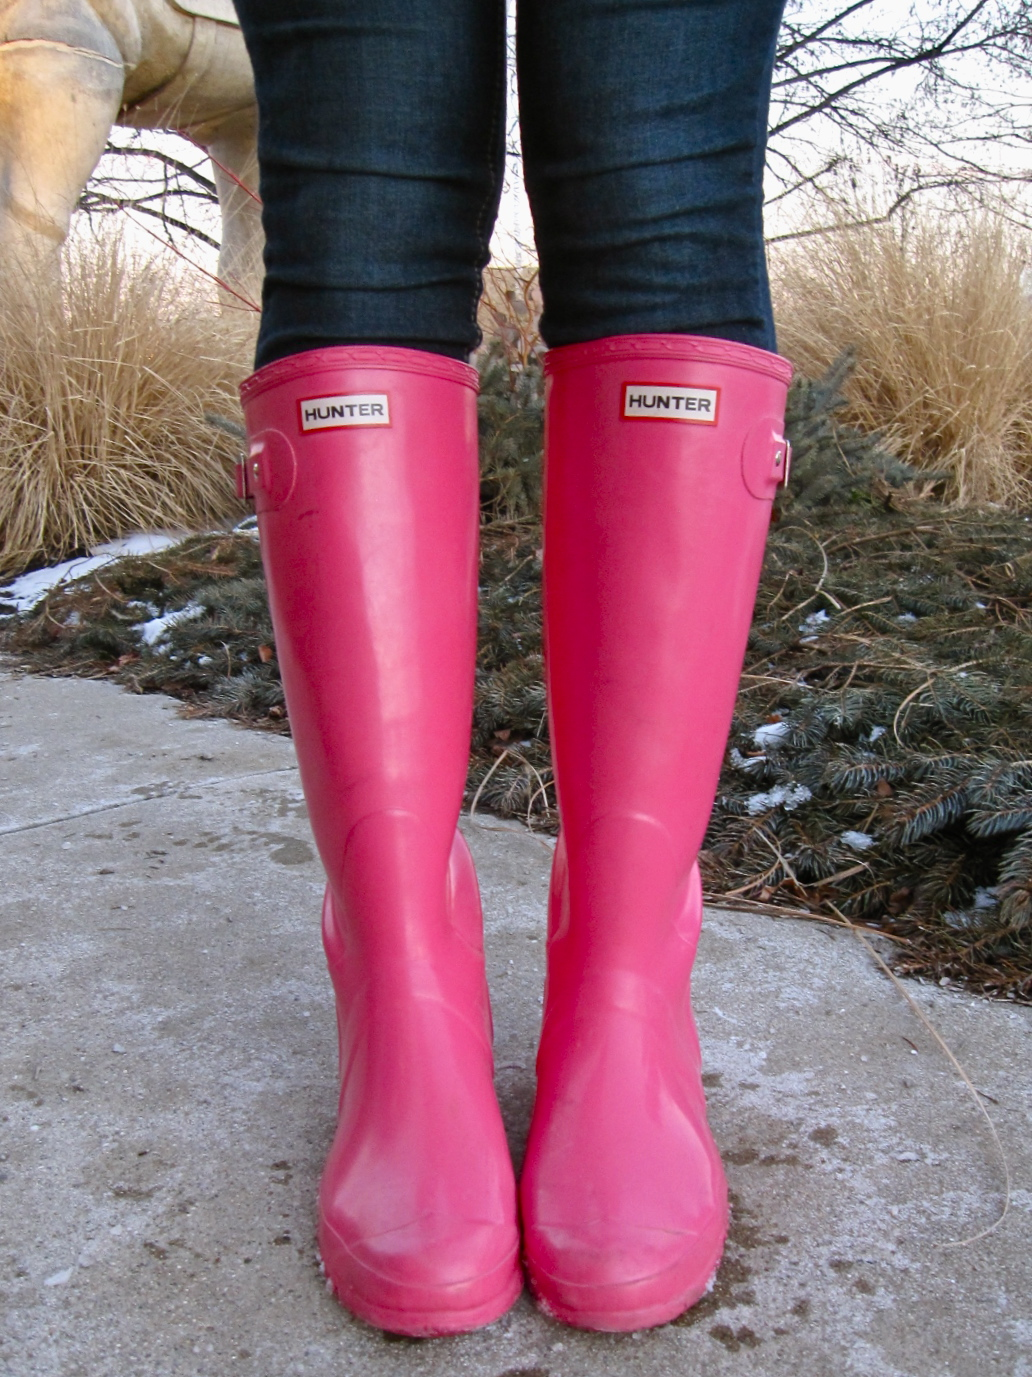 how to clean pink hunter boots